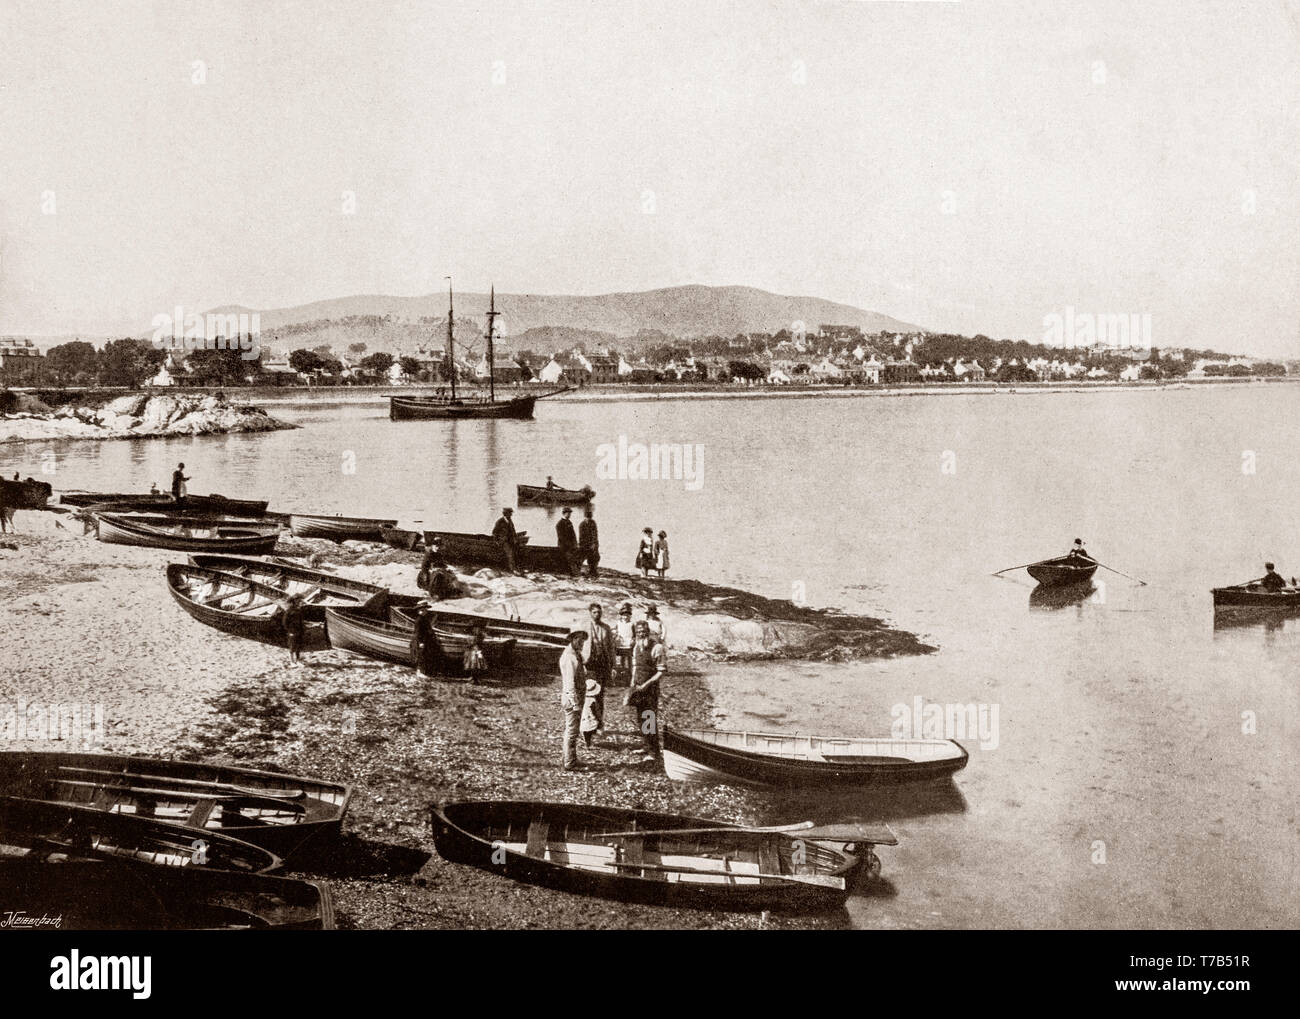 A late 19th Century view of the River Clyde at Dunoon, the main town on the Cowal peninsula in the south of Argyll and Bute, Scotland.  It becames a popular destination when travel by steamships was common around the Firth of Clyde; Glaswegians described this as going 'Doon the watter'. However, it's popularity diminished as many holidaymakers started to go elsewhere as roads and railways improved and the popularity of overseas travel increased. - Stock Image